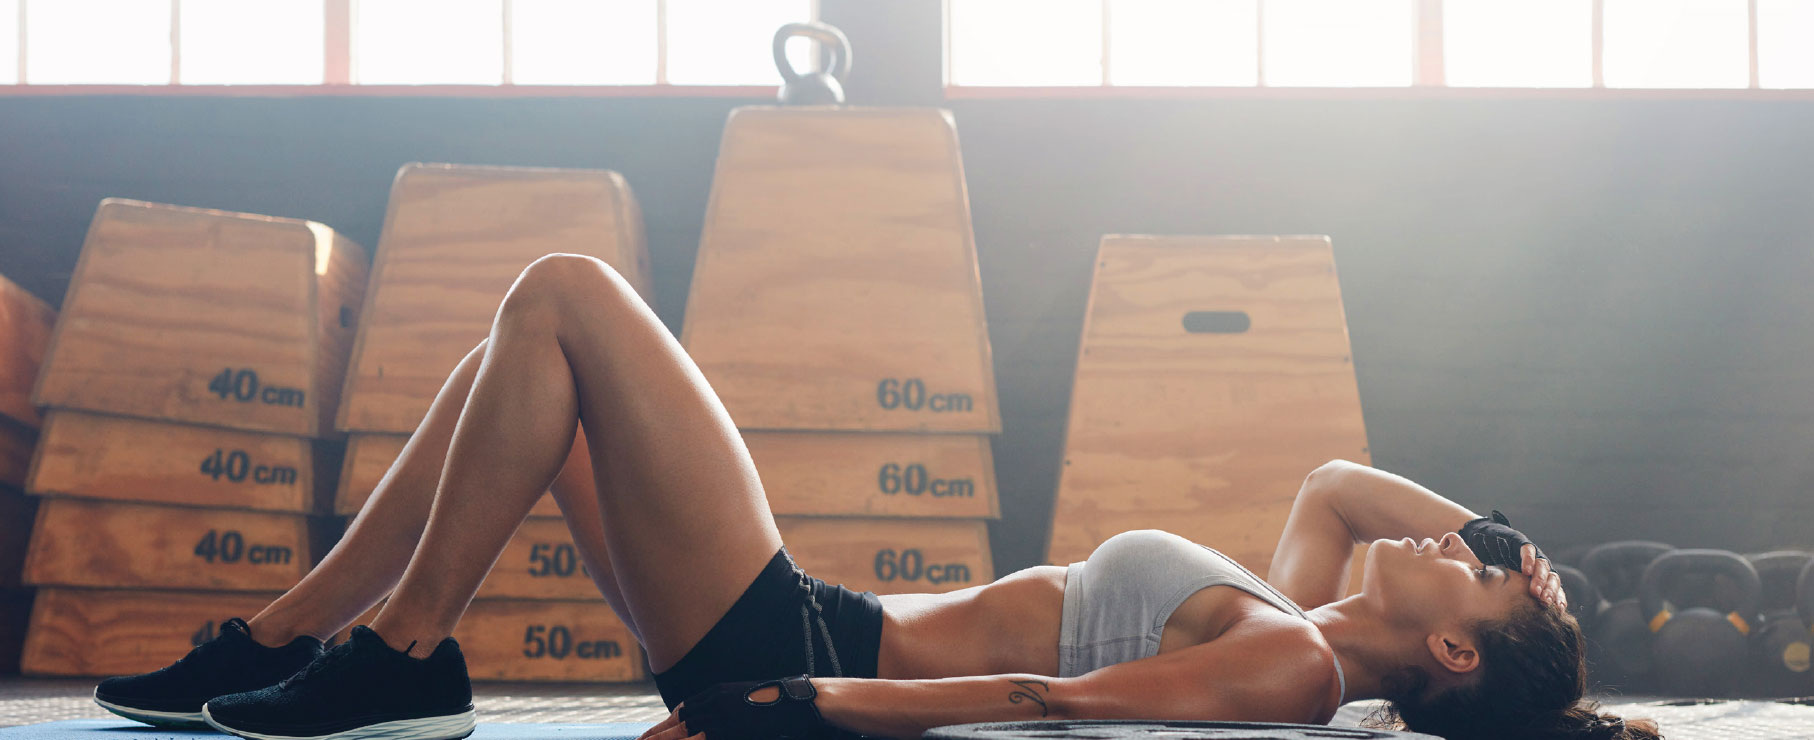 A female athlete rests on the floor, laying on her back, in this stock photo. Weights and other fitness equipment are visible behind her.